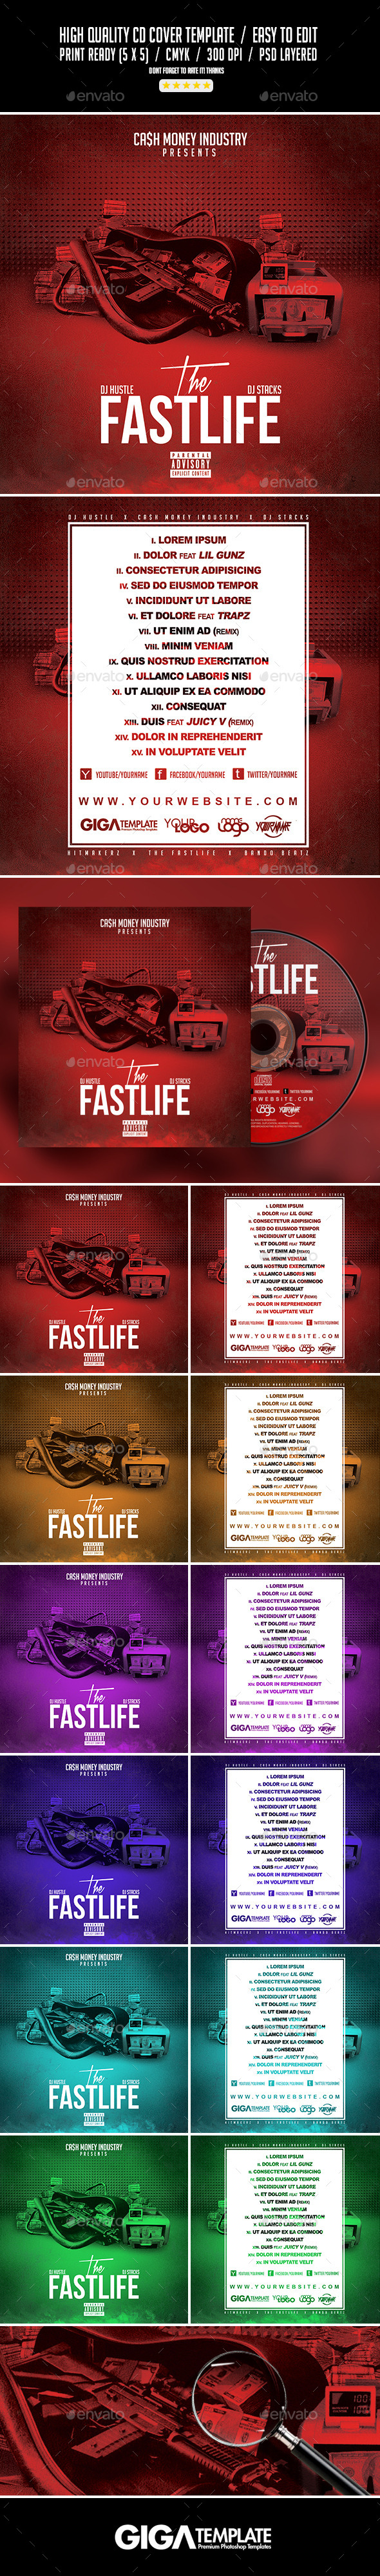 The Fastlife | Mixtape Album CD Cover Template - CD & DVD Artwork Print Templates